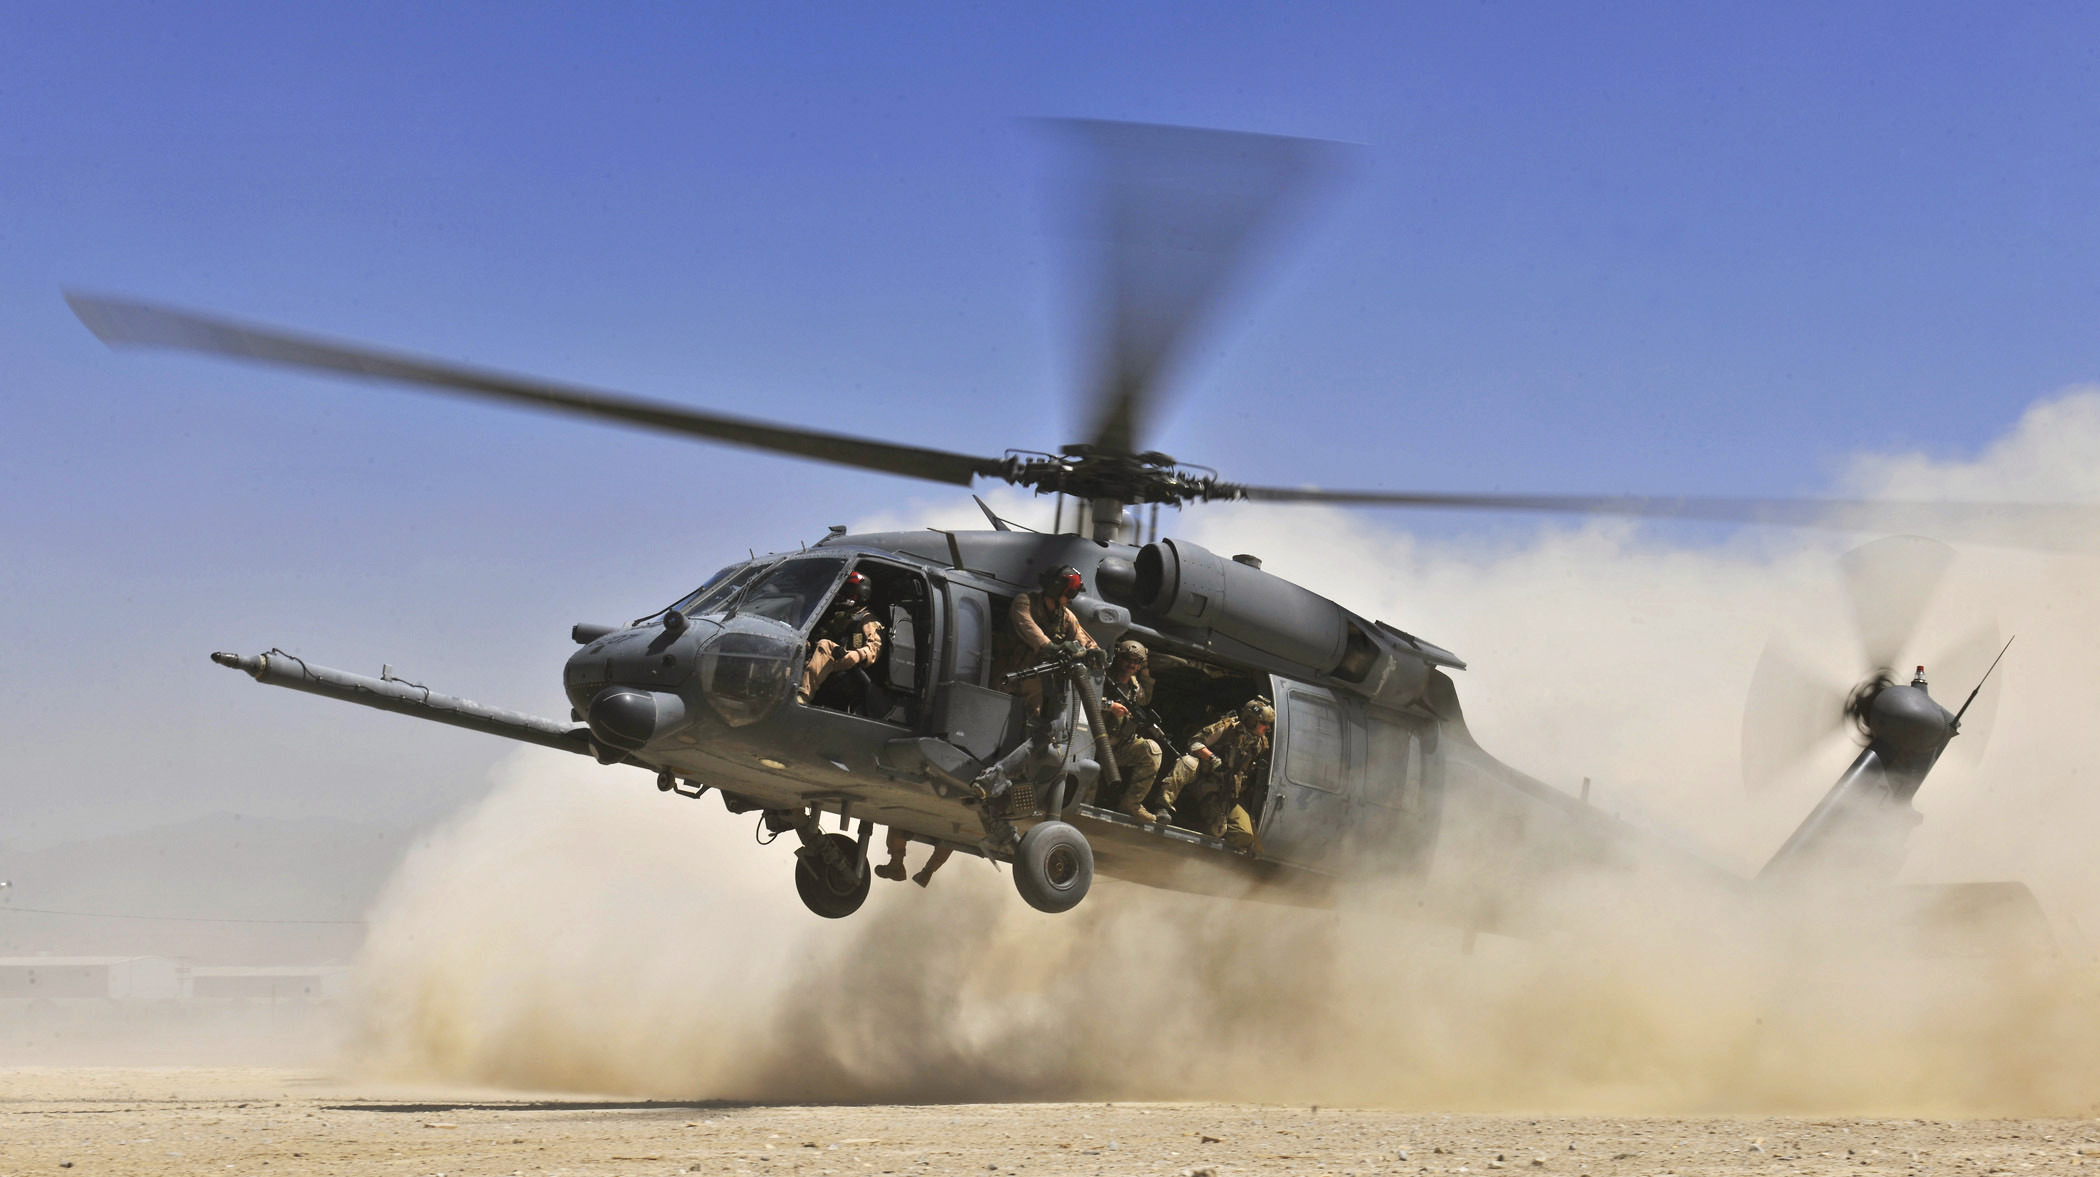 Black helicopter pictures, lesbain cum on other